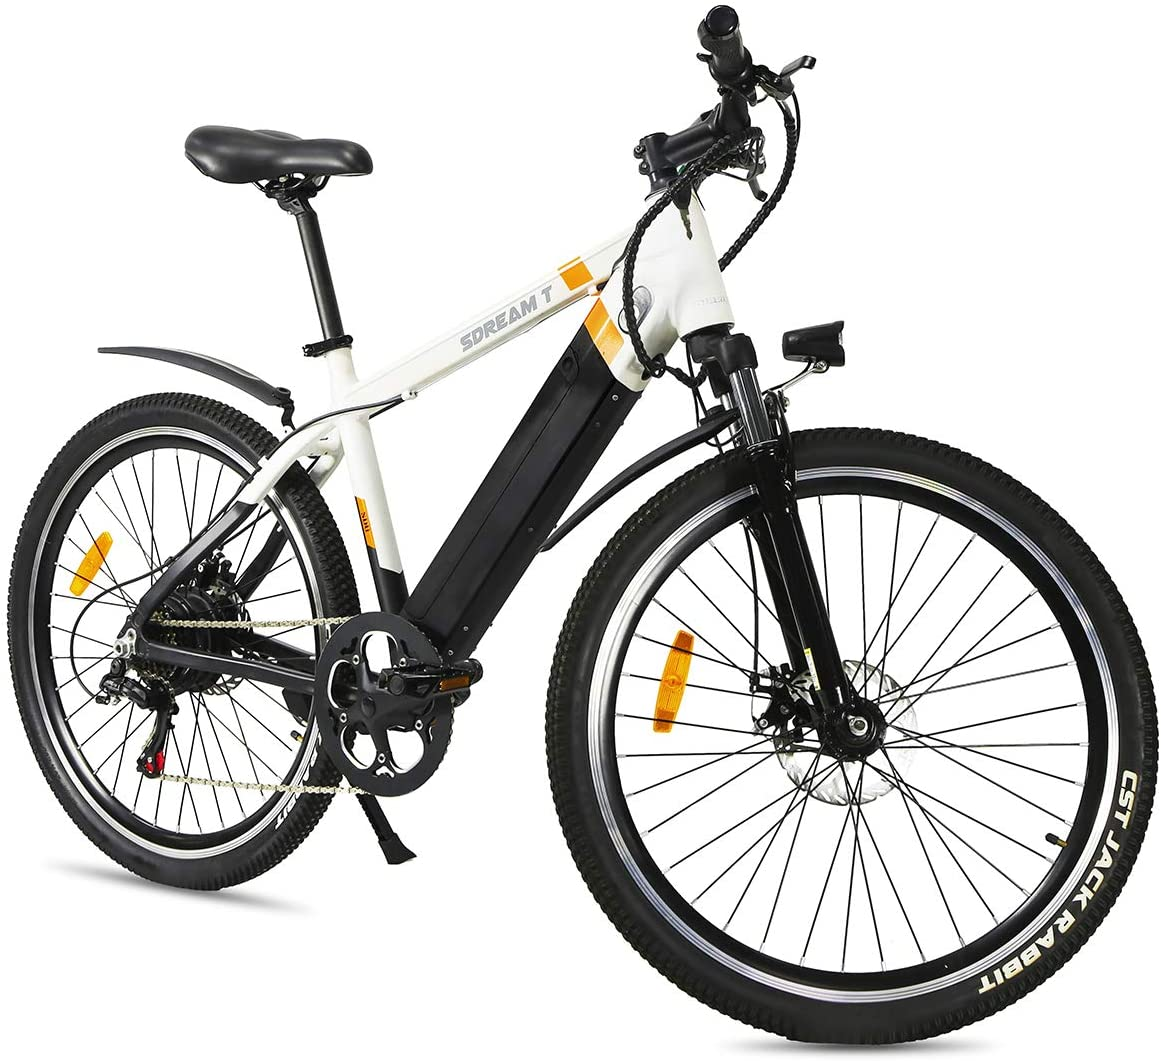 T350 - 350 Watts Aluminum Electric Bike in 2 Colors